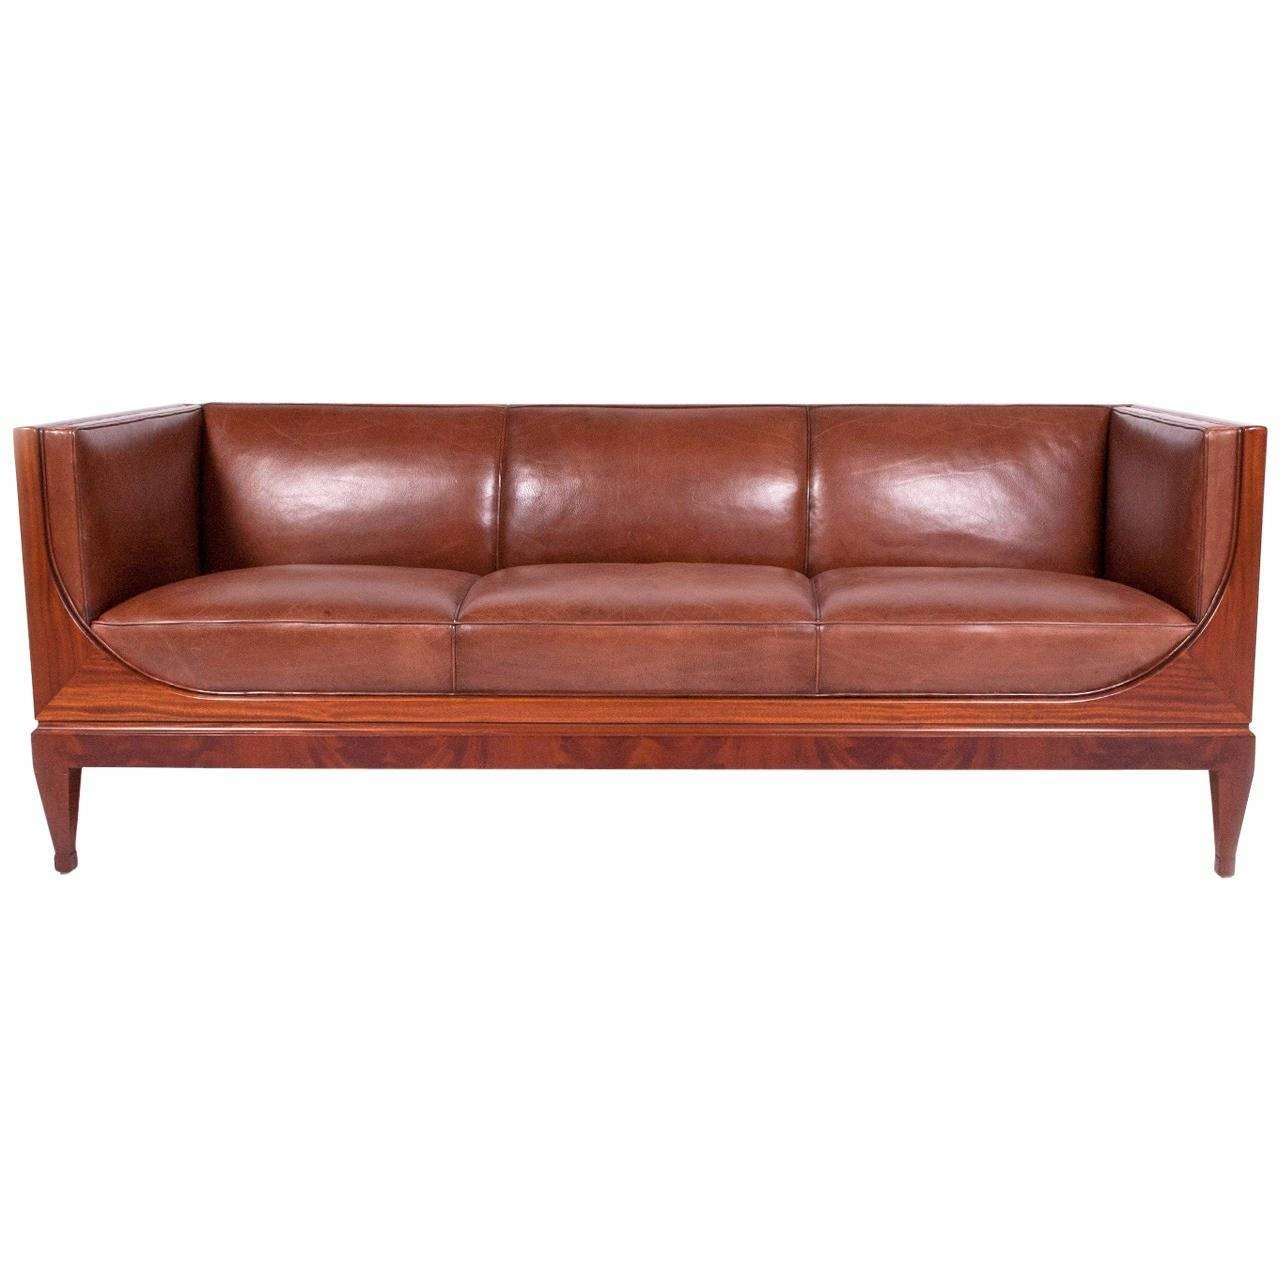 Classic Sofafrits Henningsen, 1930S For Sale At 1Stdibs pertaining to 1930S Couch (Image 9 of 30)